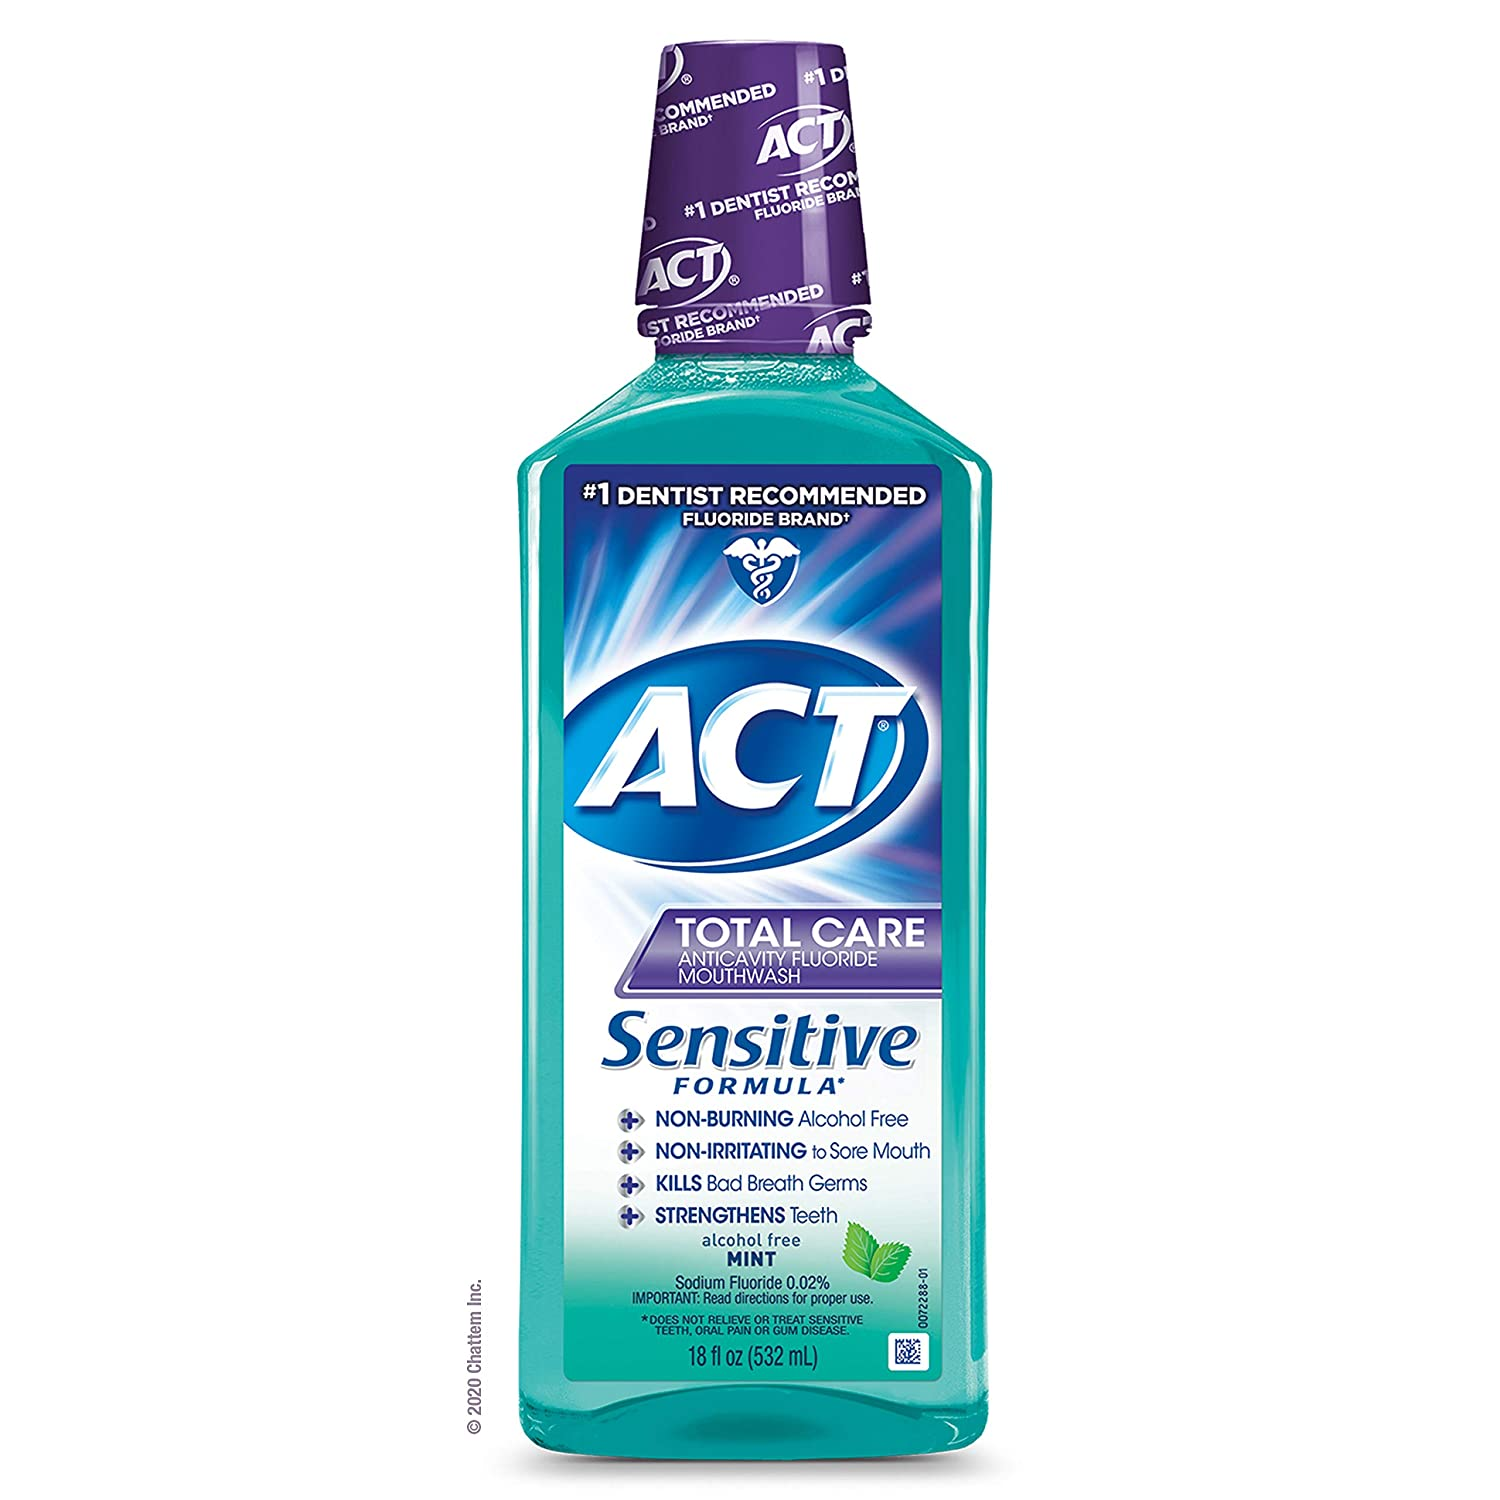 ACT Total Care Sensitive Formula Mouthwash 18 fl. oz. Anticavity Mouthwash With Fluoride, Mint